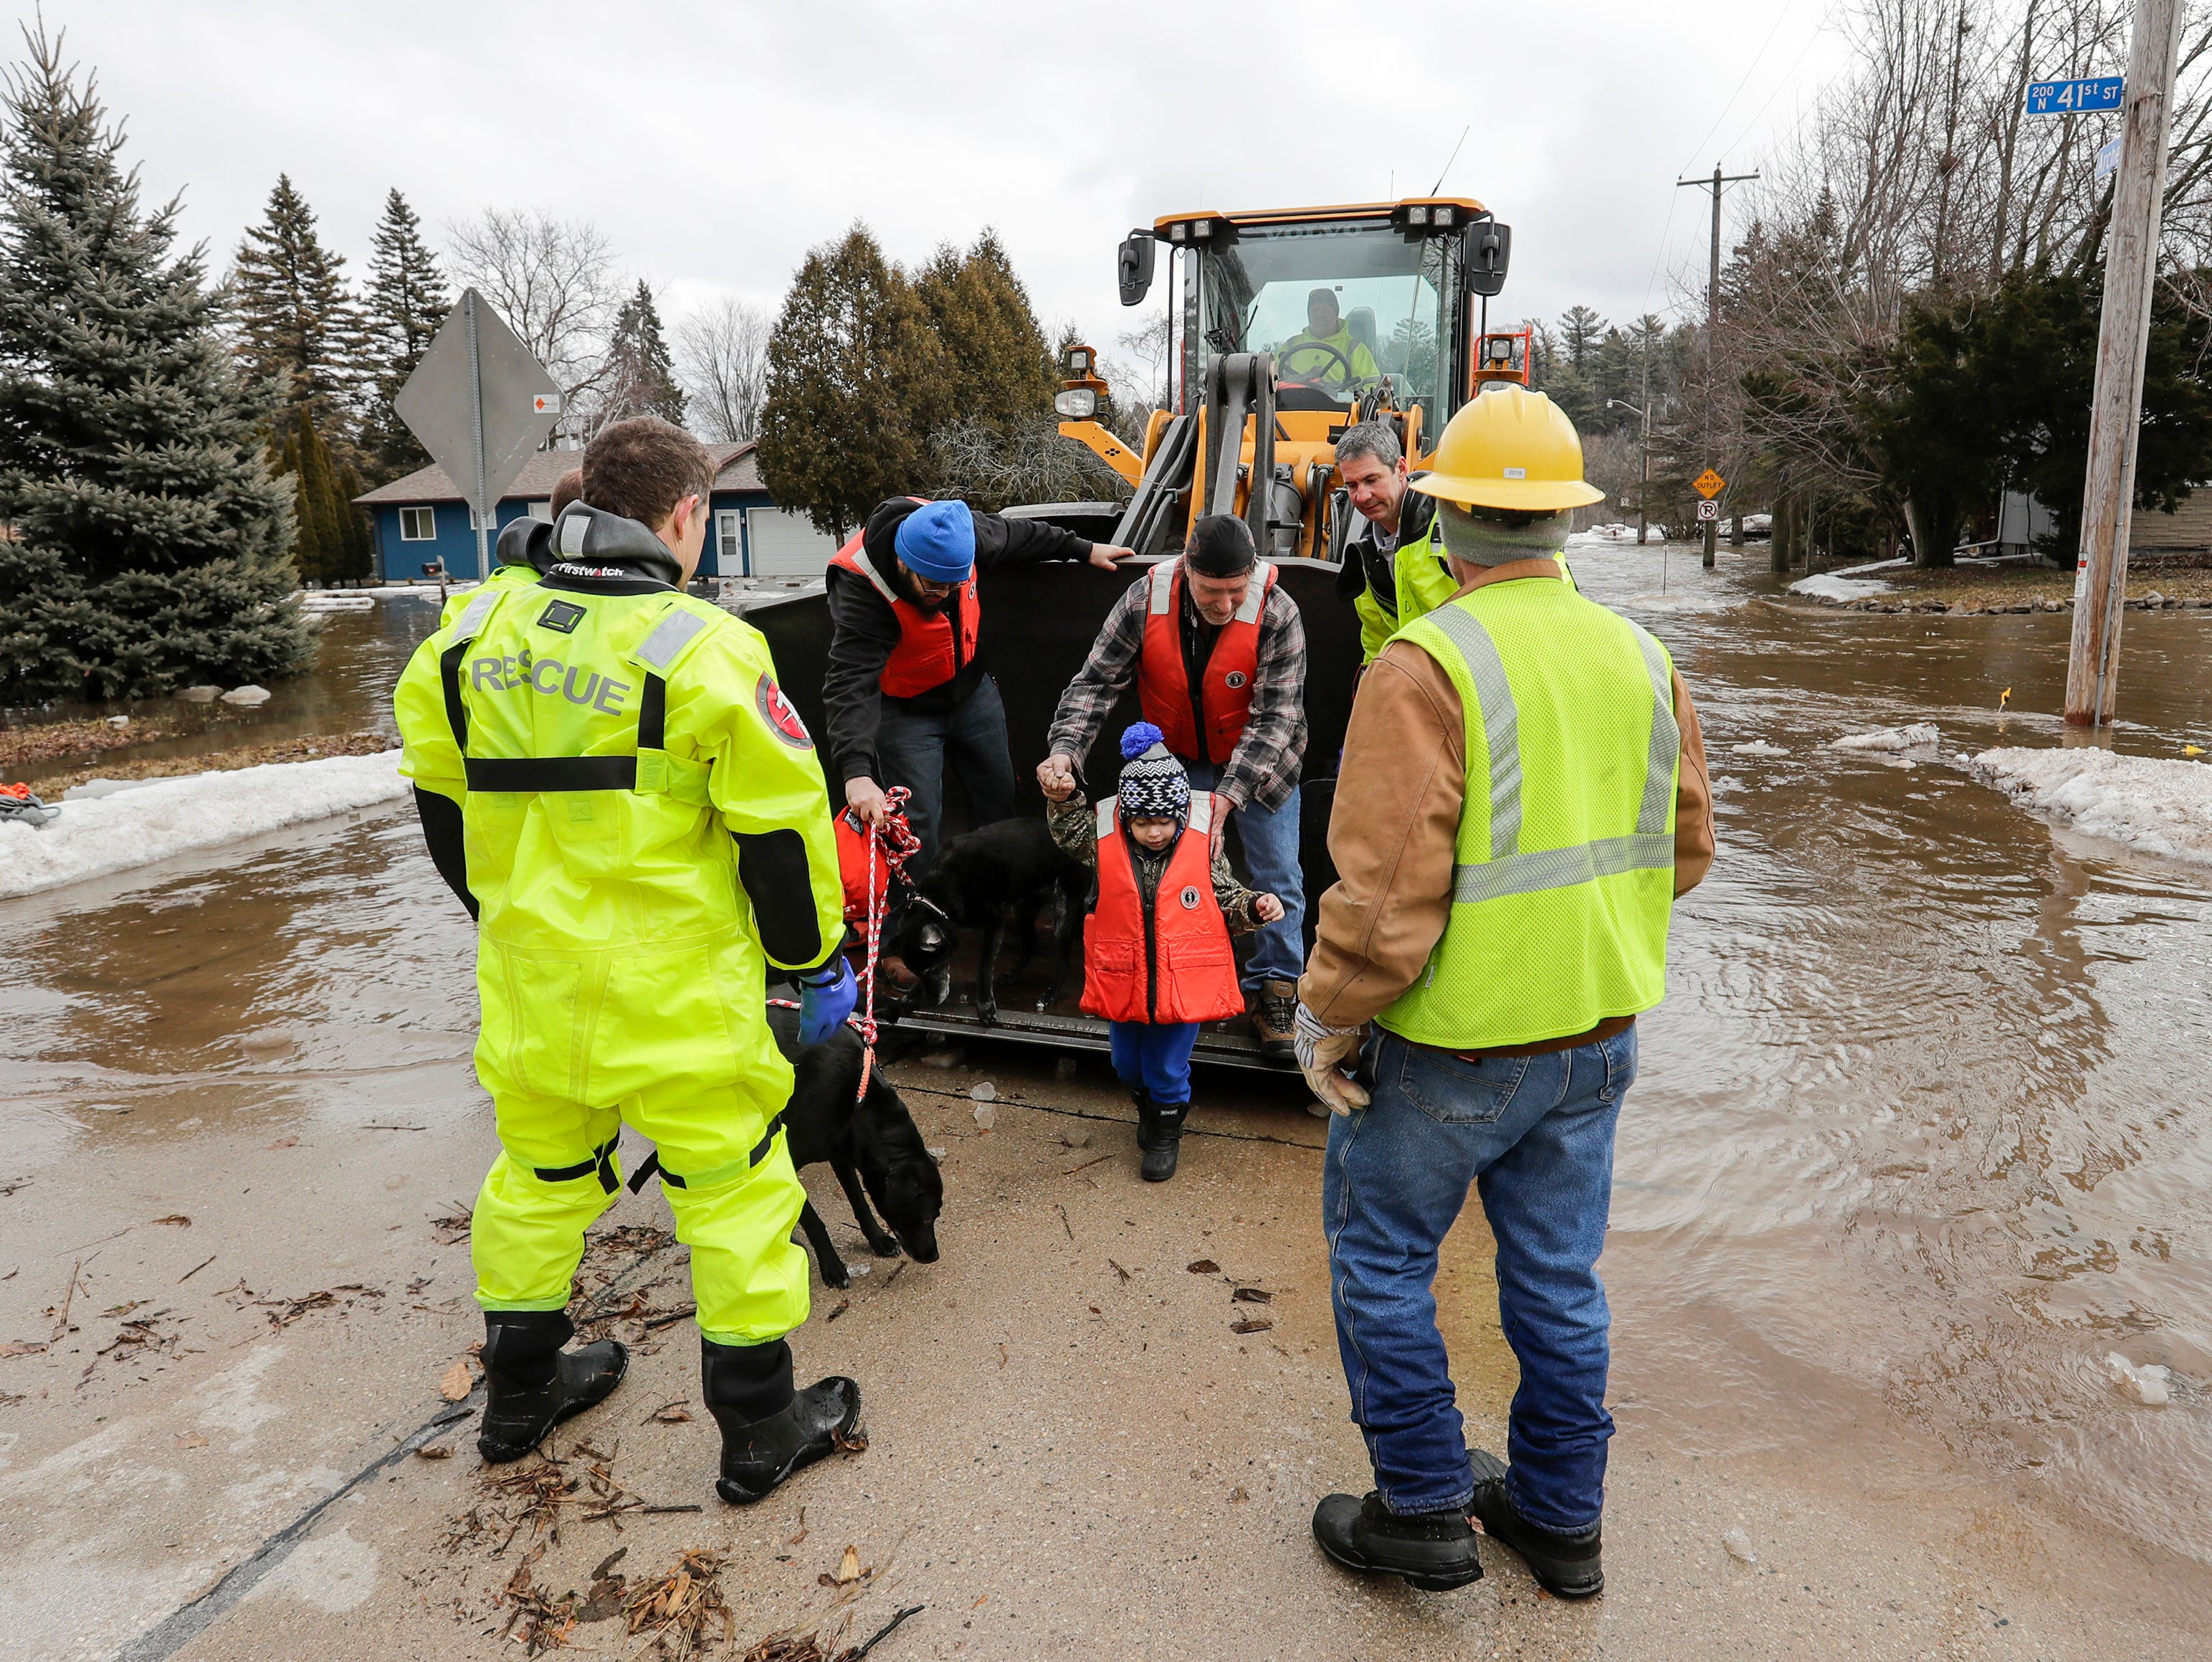 Manitowoc Fire and Rescue teams evacuate residents at 41st and Archer after an ice jam on the Manitowoc River caused severe flooding on the block Thursday, March 21, 2019, in Manitowoc, Wis. Joshua Clark/USA TODAY NETWORK-Wisconsin